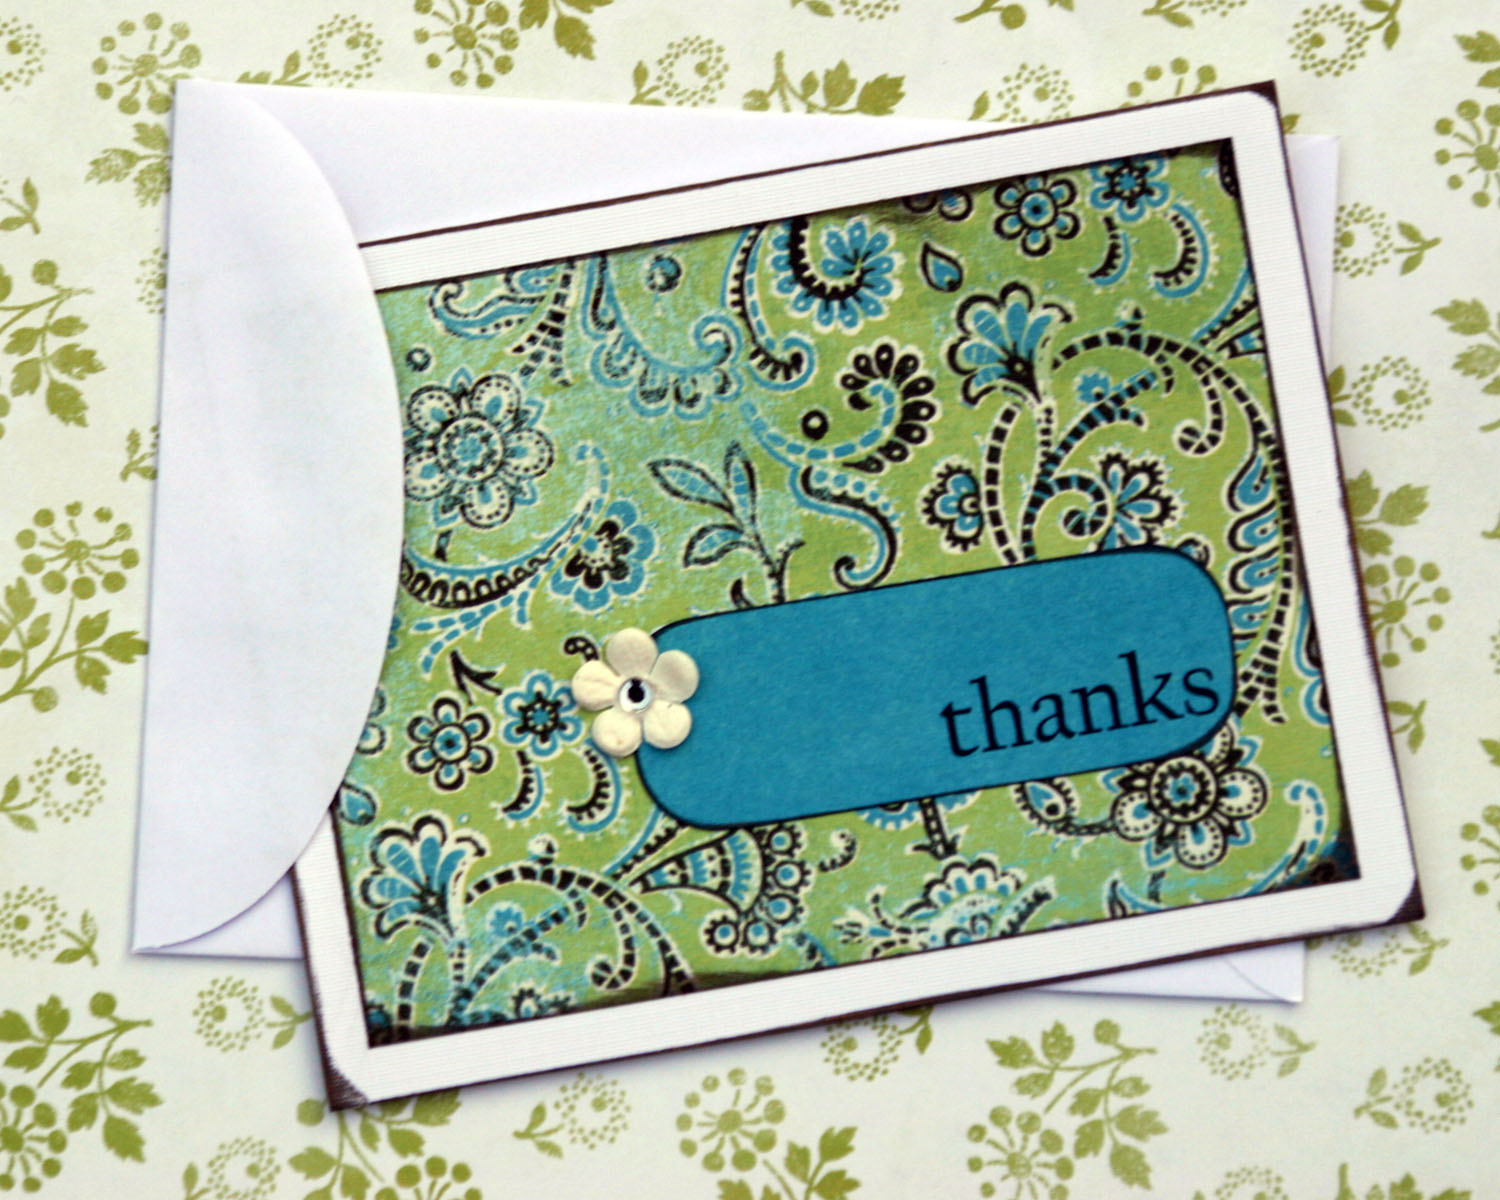 Gratitude Card Set 6 - Photo credit Fern R on Flickr, used unmodified under CC BY 2.0 License